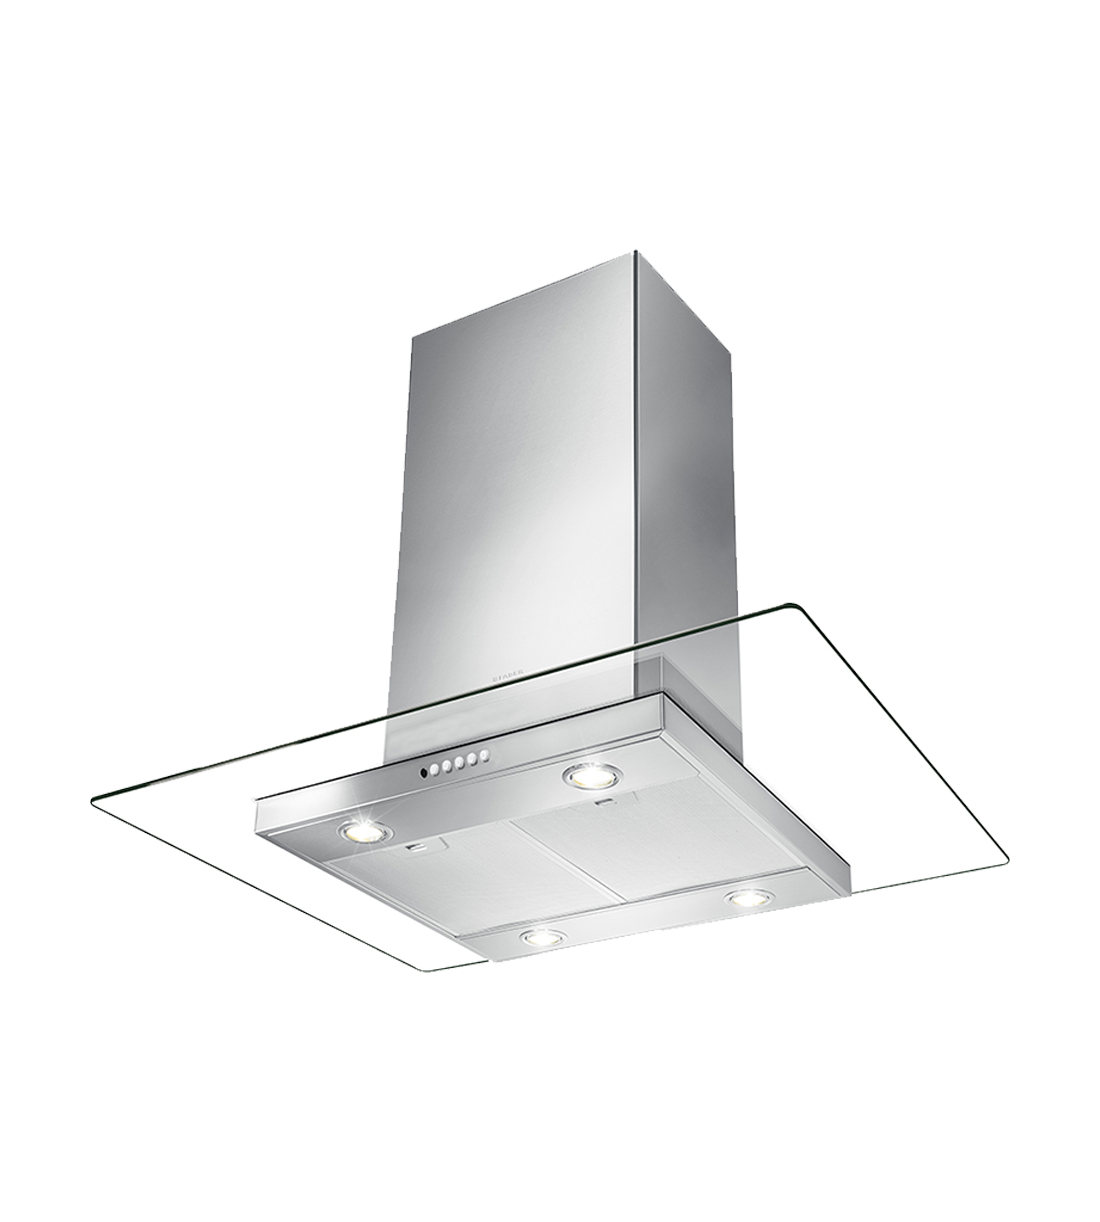 Faber Range hood GLASIS36SSV in Stainless Steel color showcased by Corbeil Electro Store